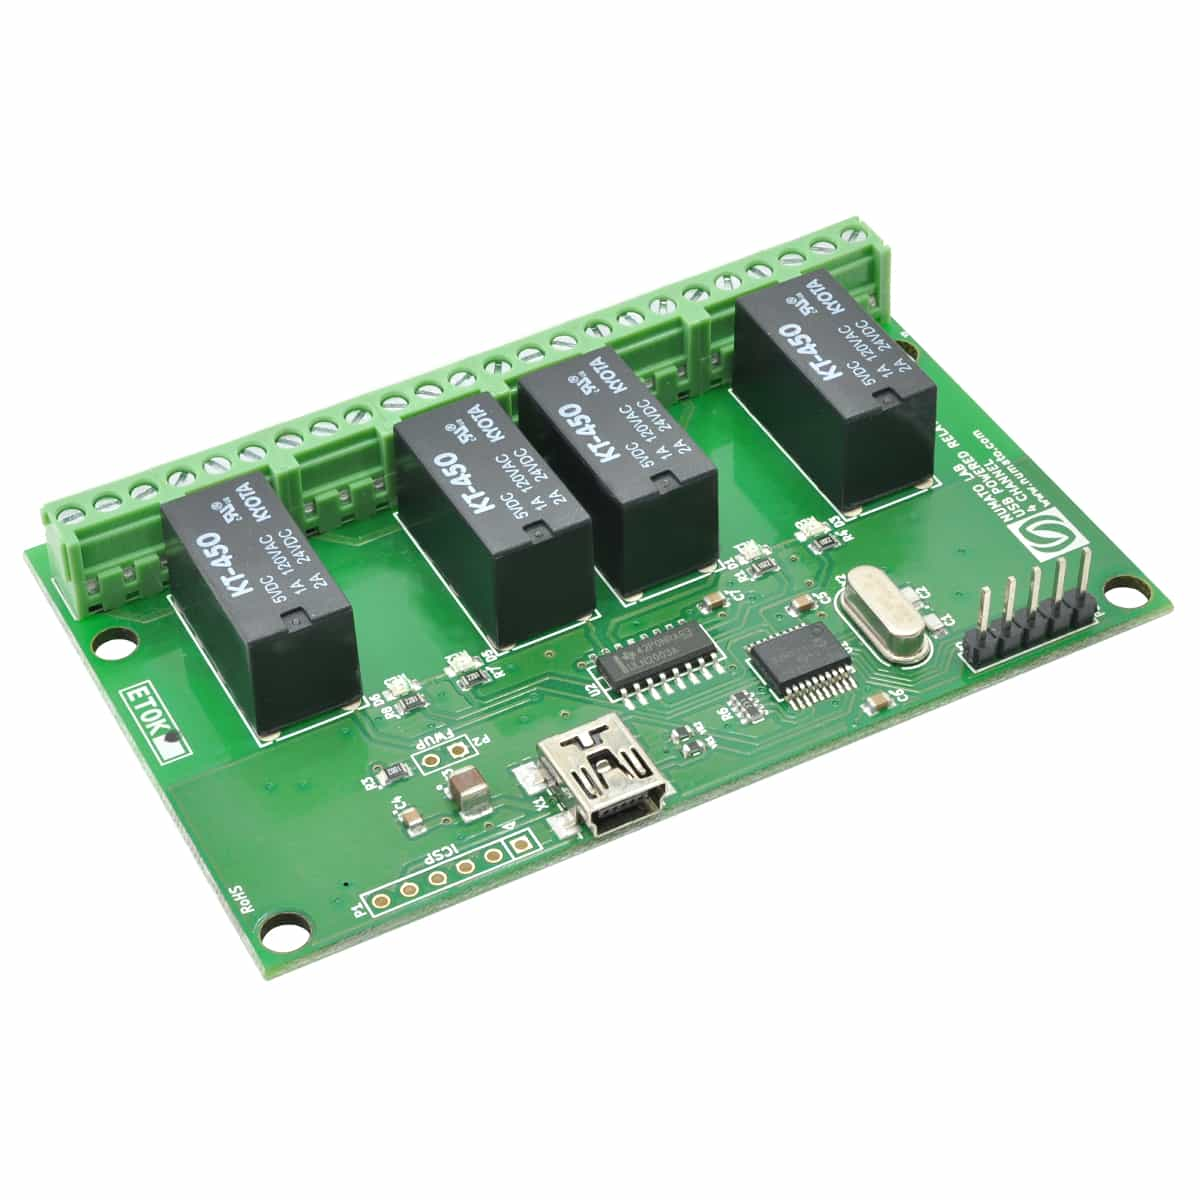 Usb Relay Modules With Gpio And Analog Inputs Numato Lab Power Que Es 4 Channel Powered Module